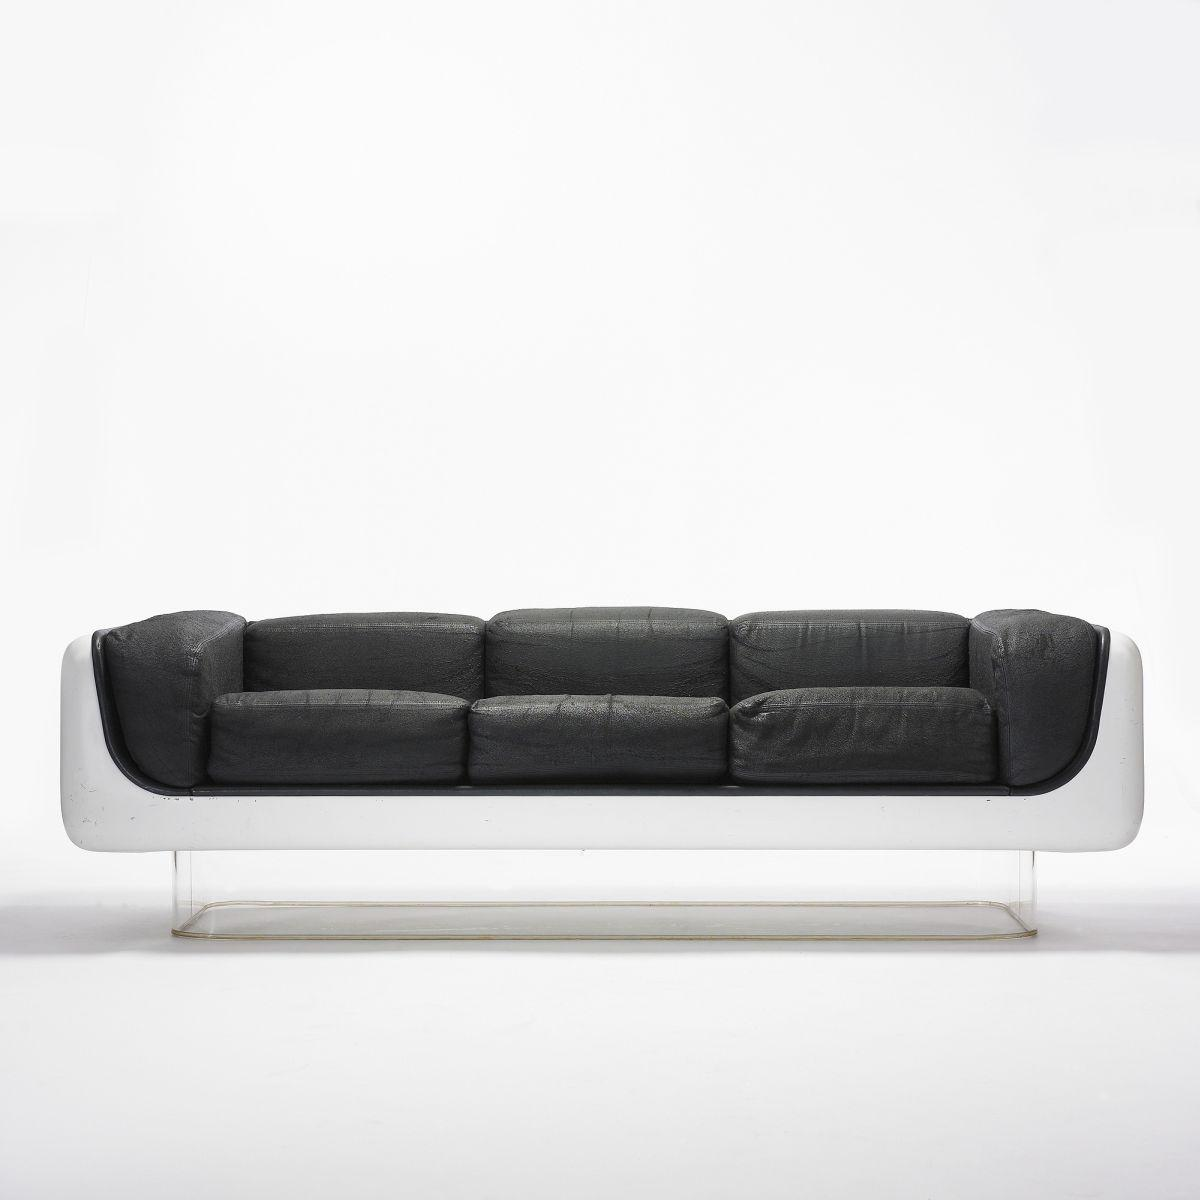 steelcase sofa platner how to clean cloth set media scape lounge seating office